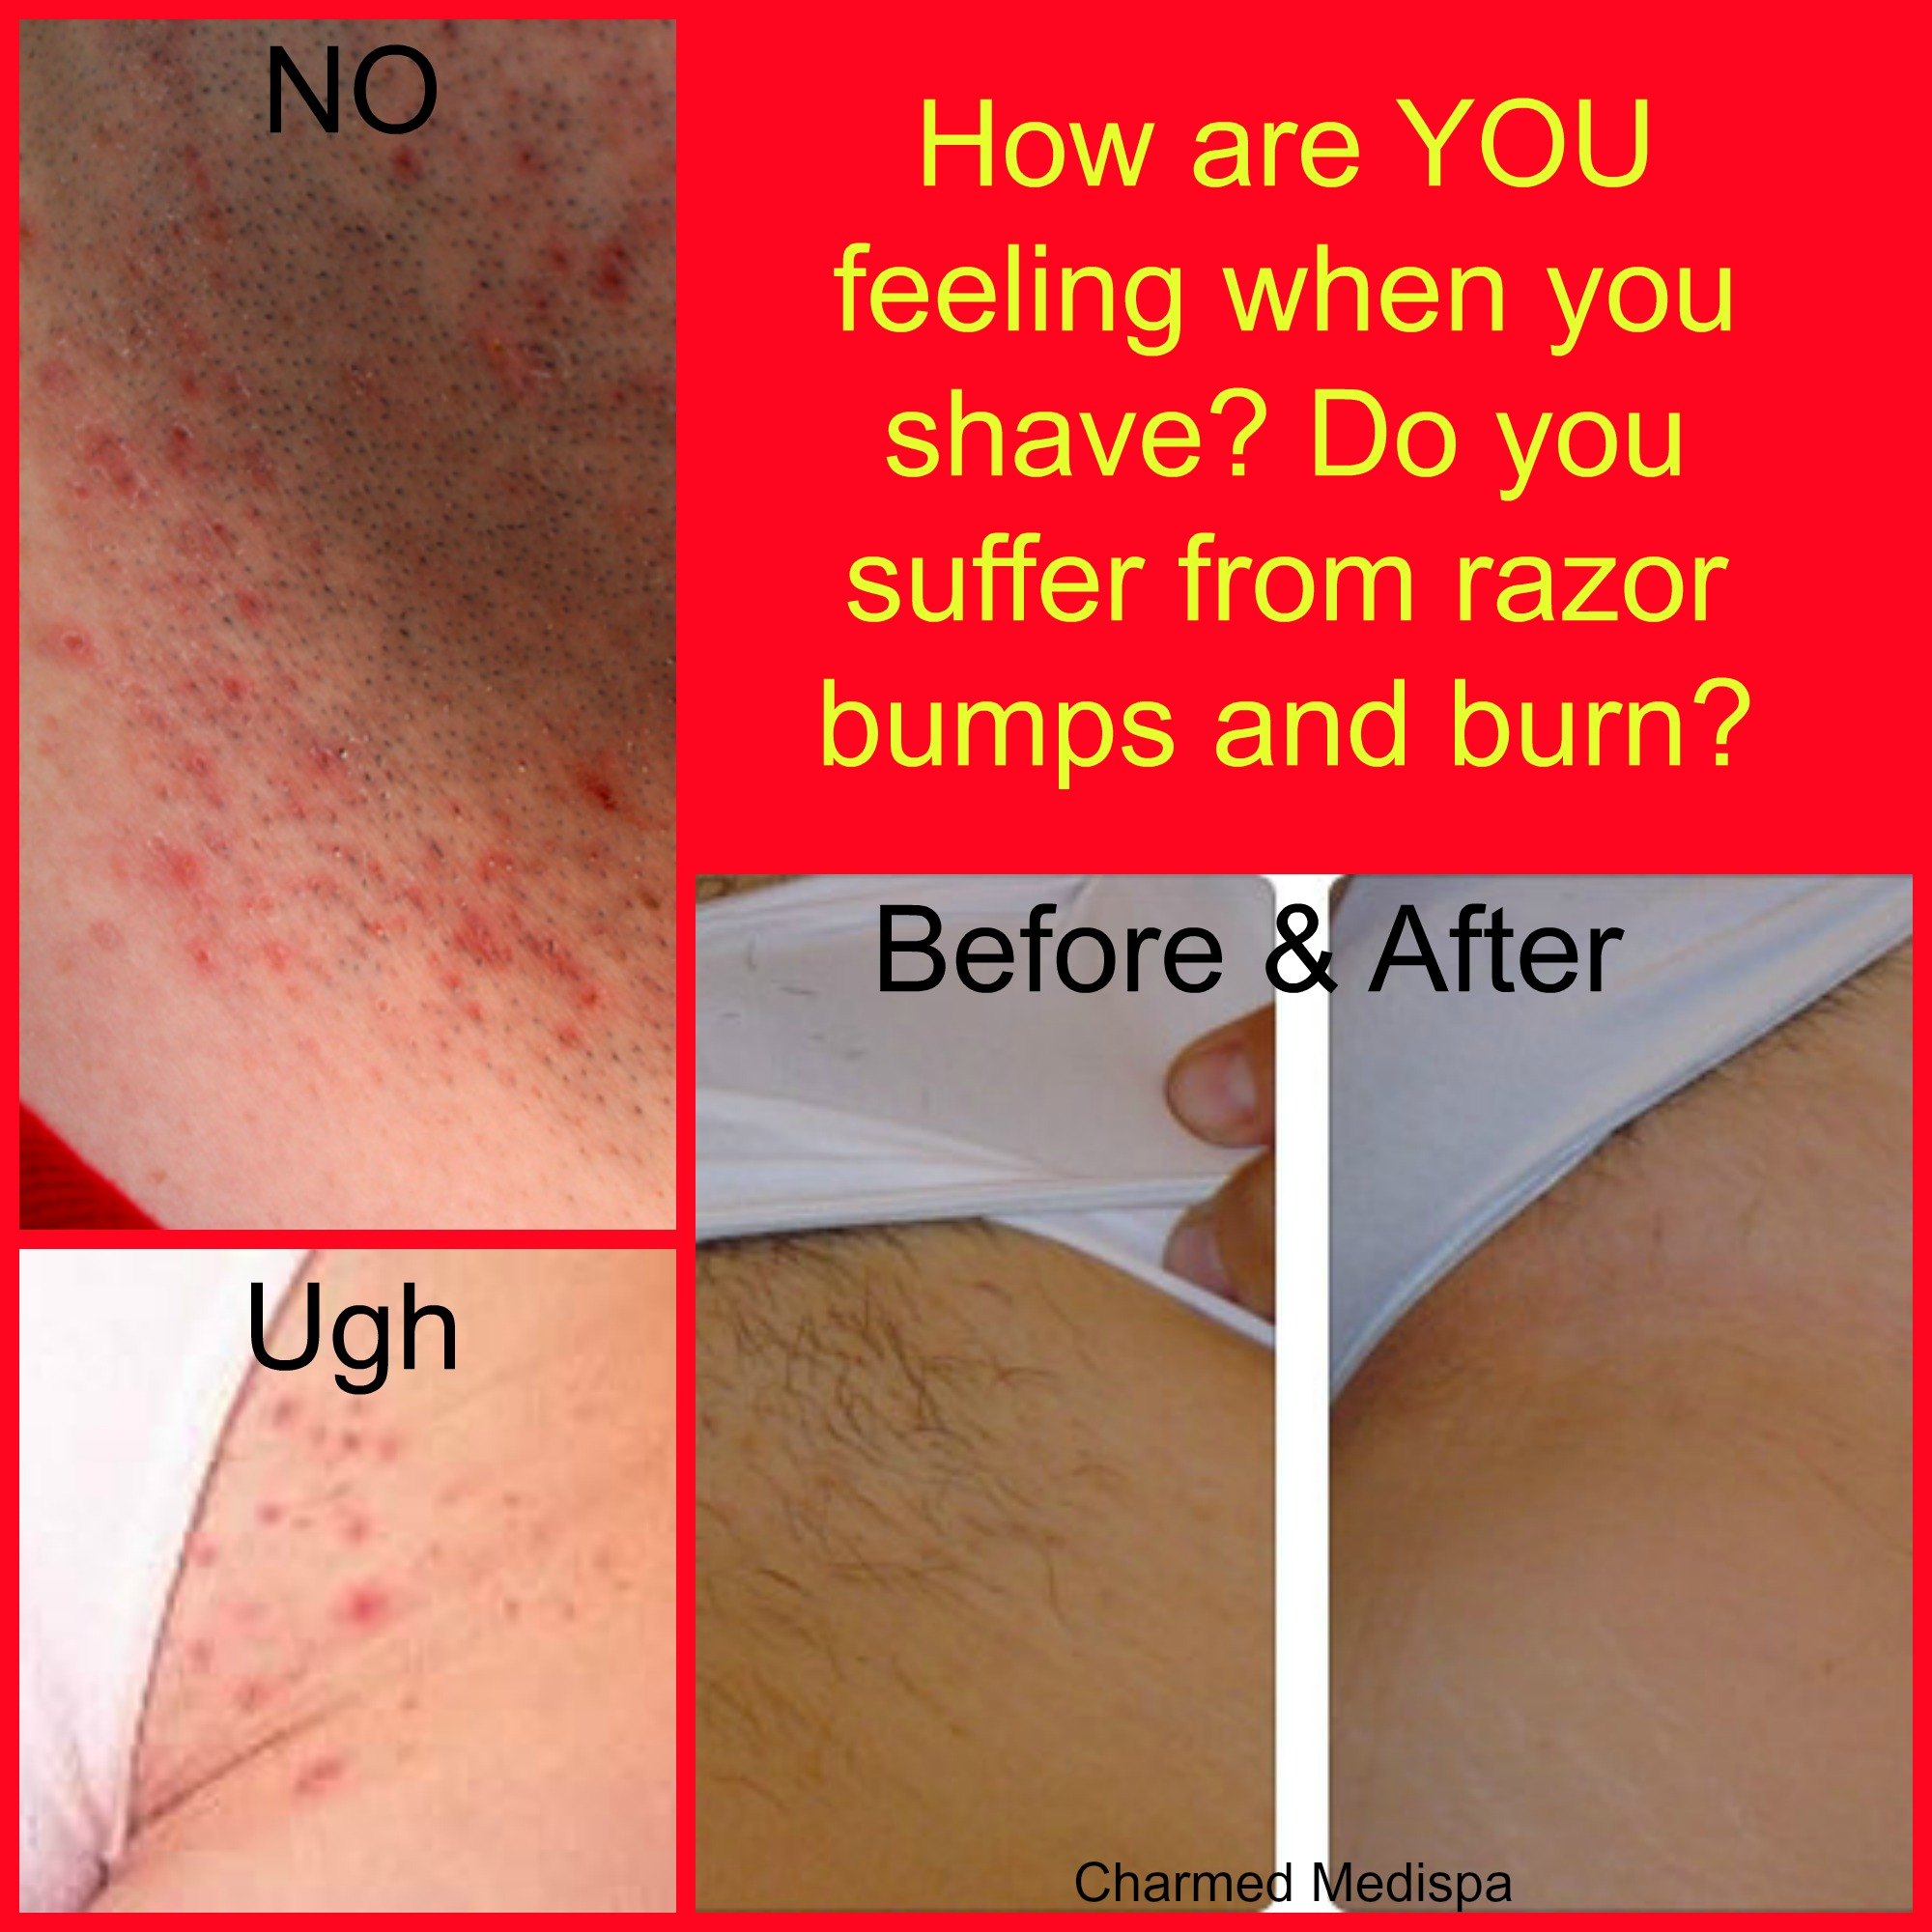 Bikini hair laser photo removal